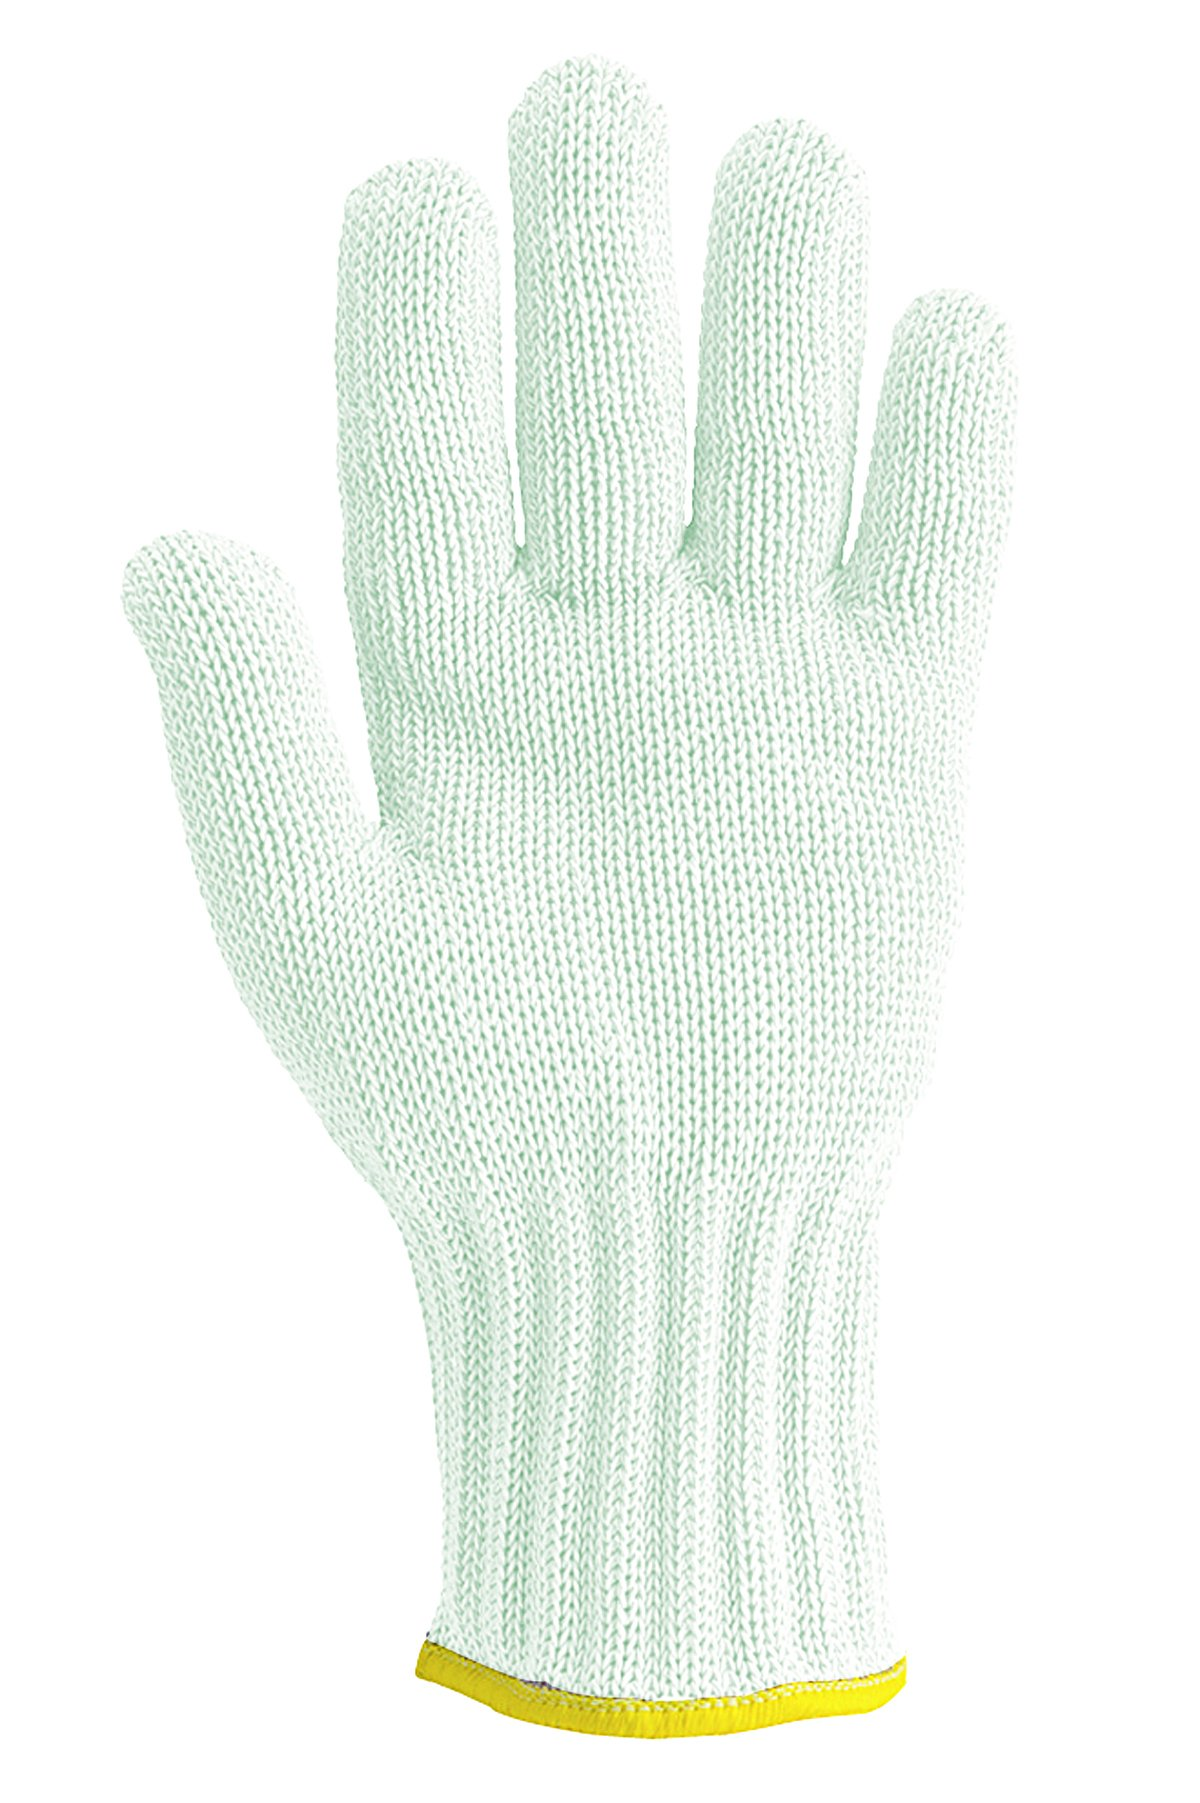 Whizard by Wells Lamont Industrial 333021, HANDGUARD II Cut Resistant Gloves, CFR 21 Approved, Heavy Duty Gloves (Pack of 6 Pairs)